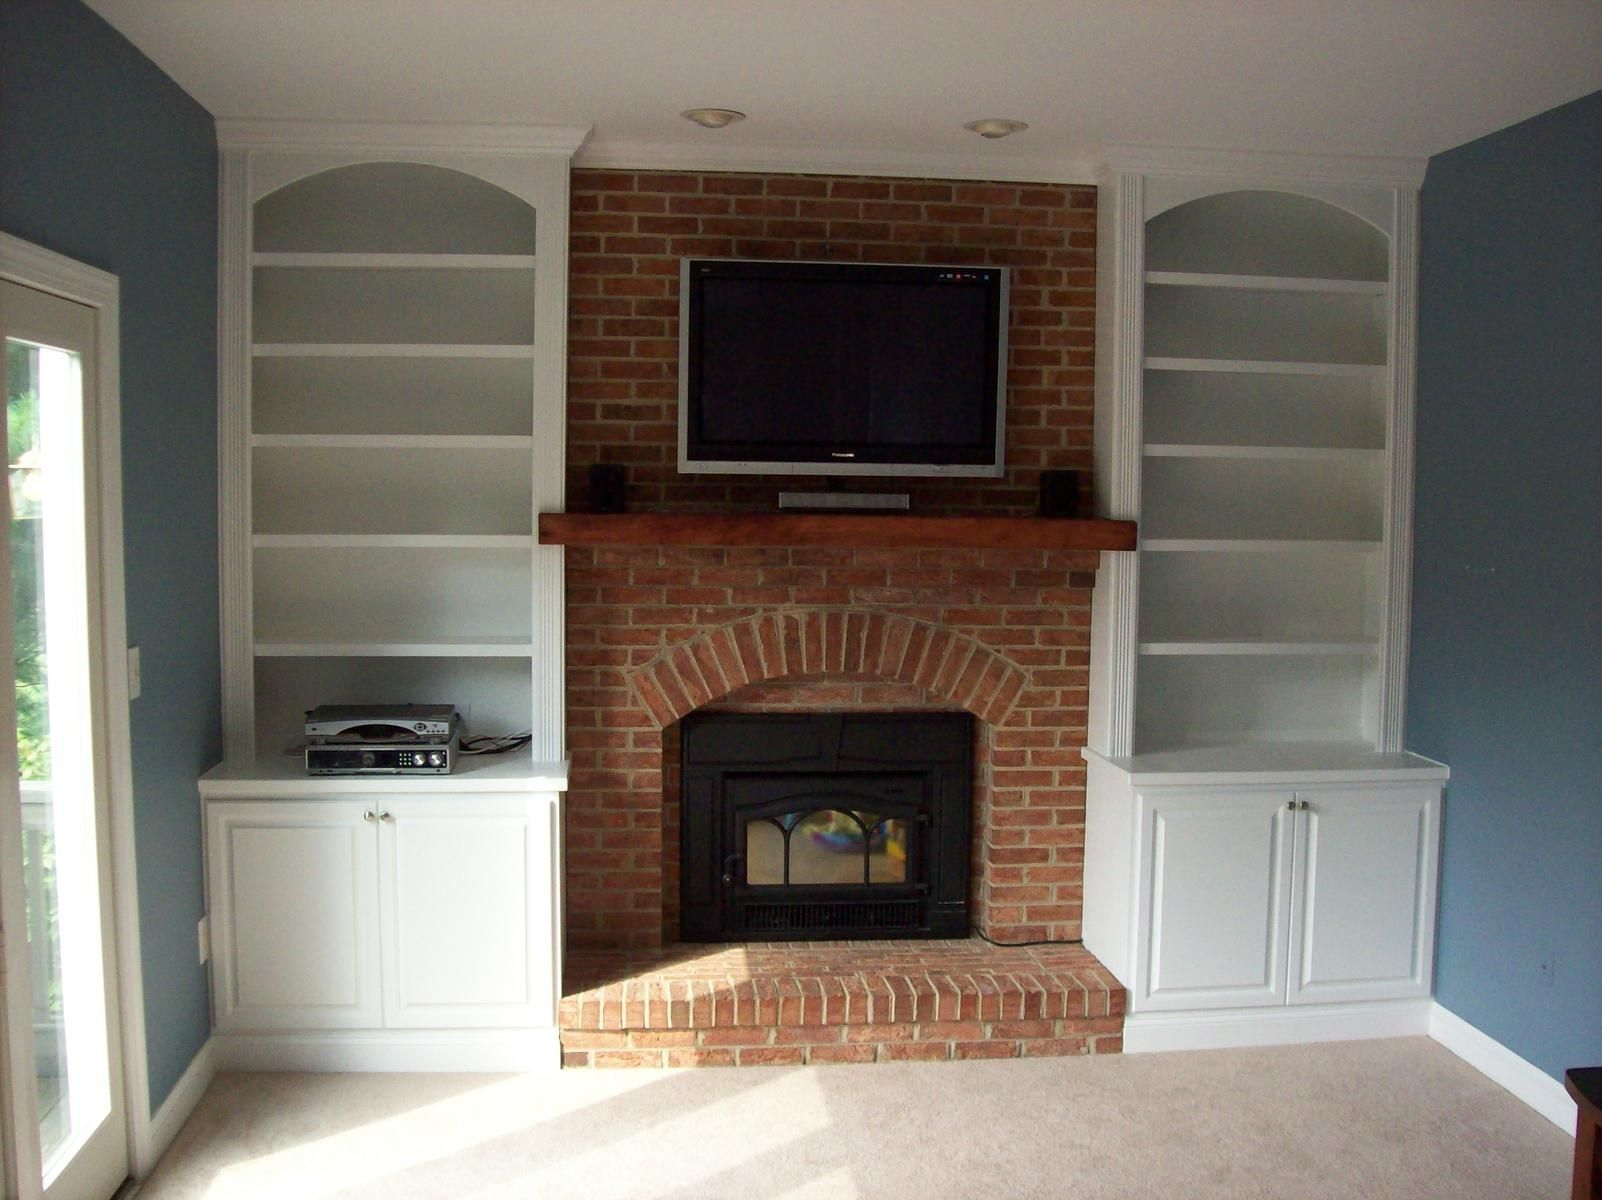 Fireplace bookcase on pinterest bookshelves around fireplace shelv - Interior Sweet Brown Wooden Floating Fireplace Shelves For Lcd Place And Brick Wall Exposed Panels As Well As White Oak Wood Open Shelved B